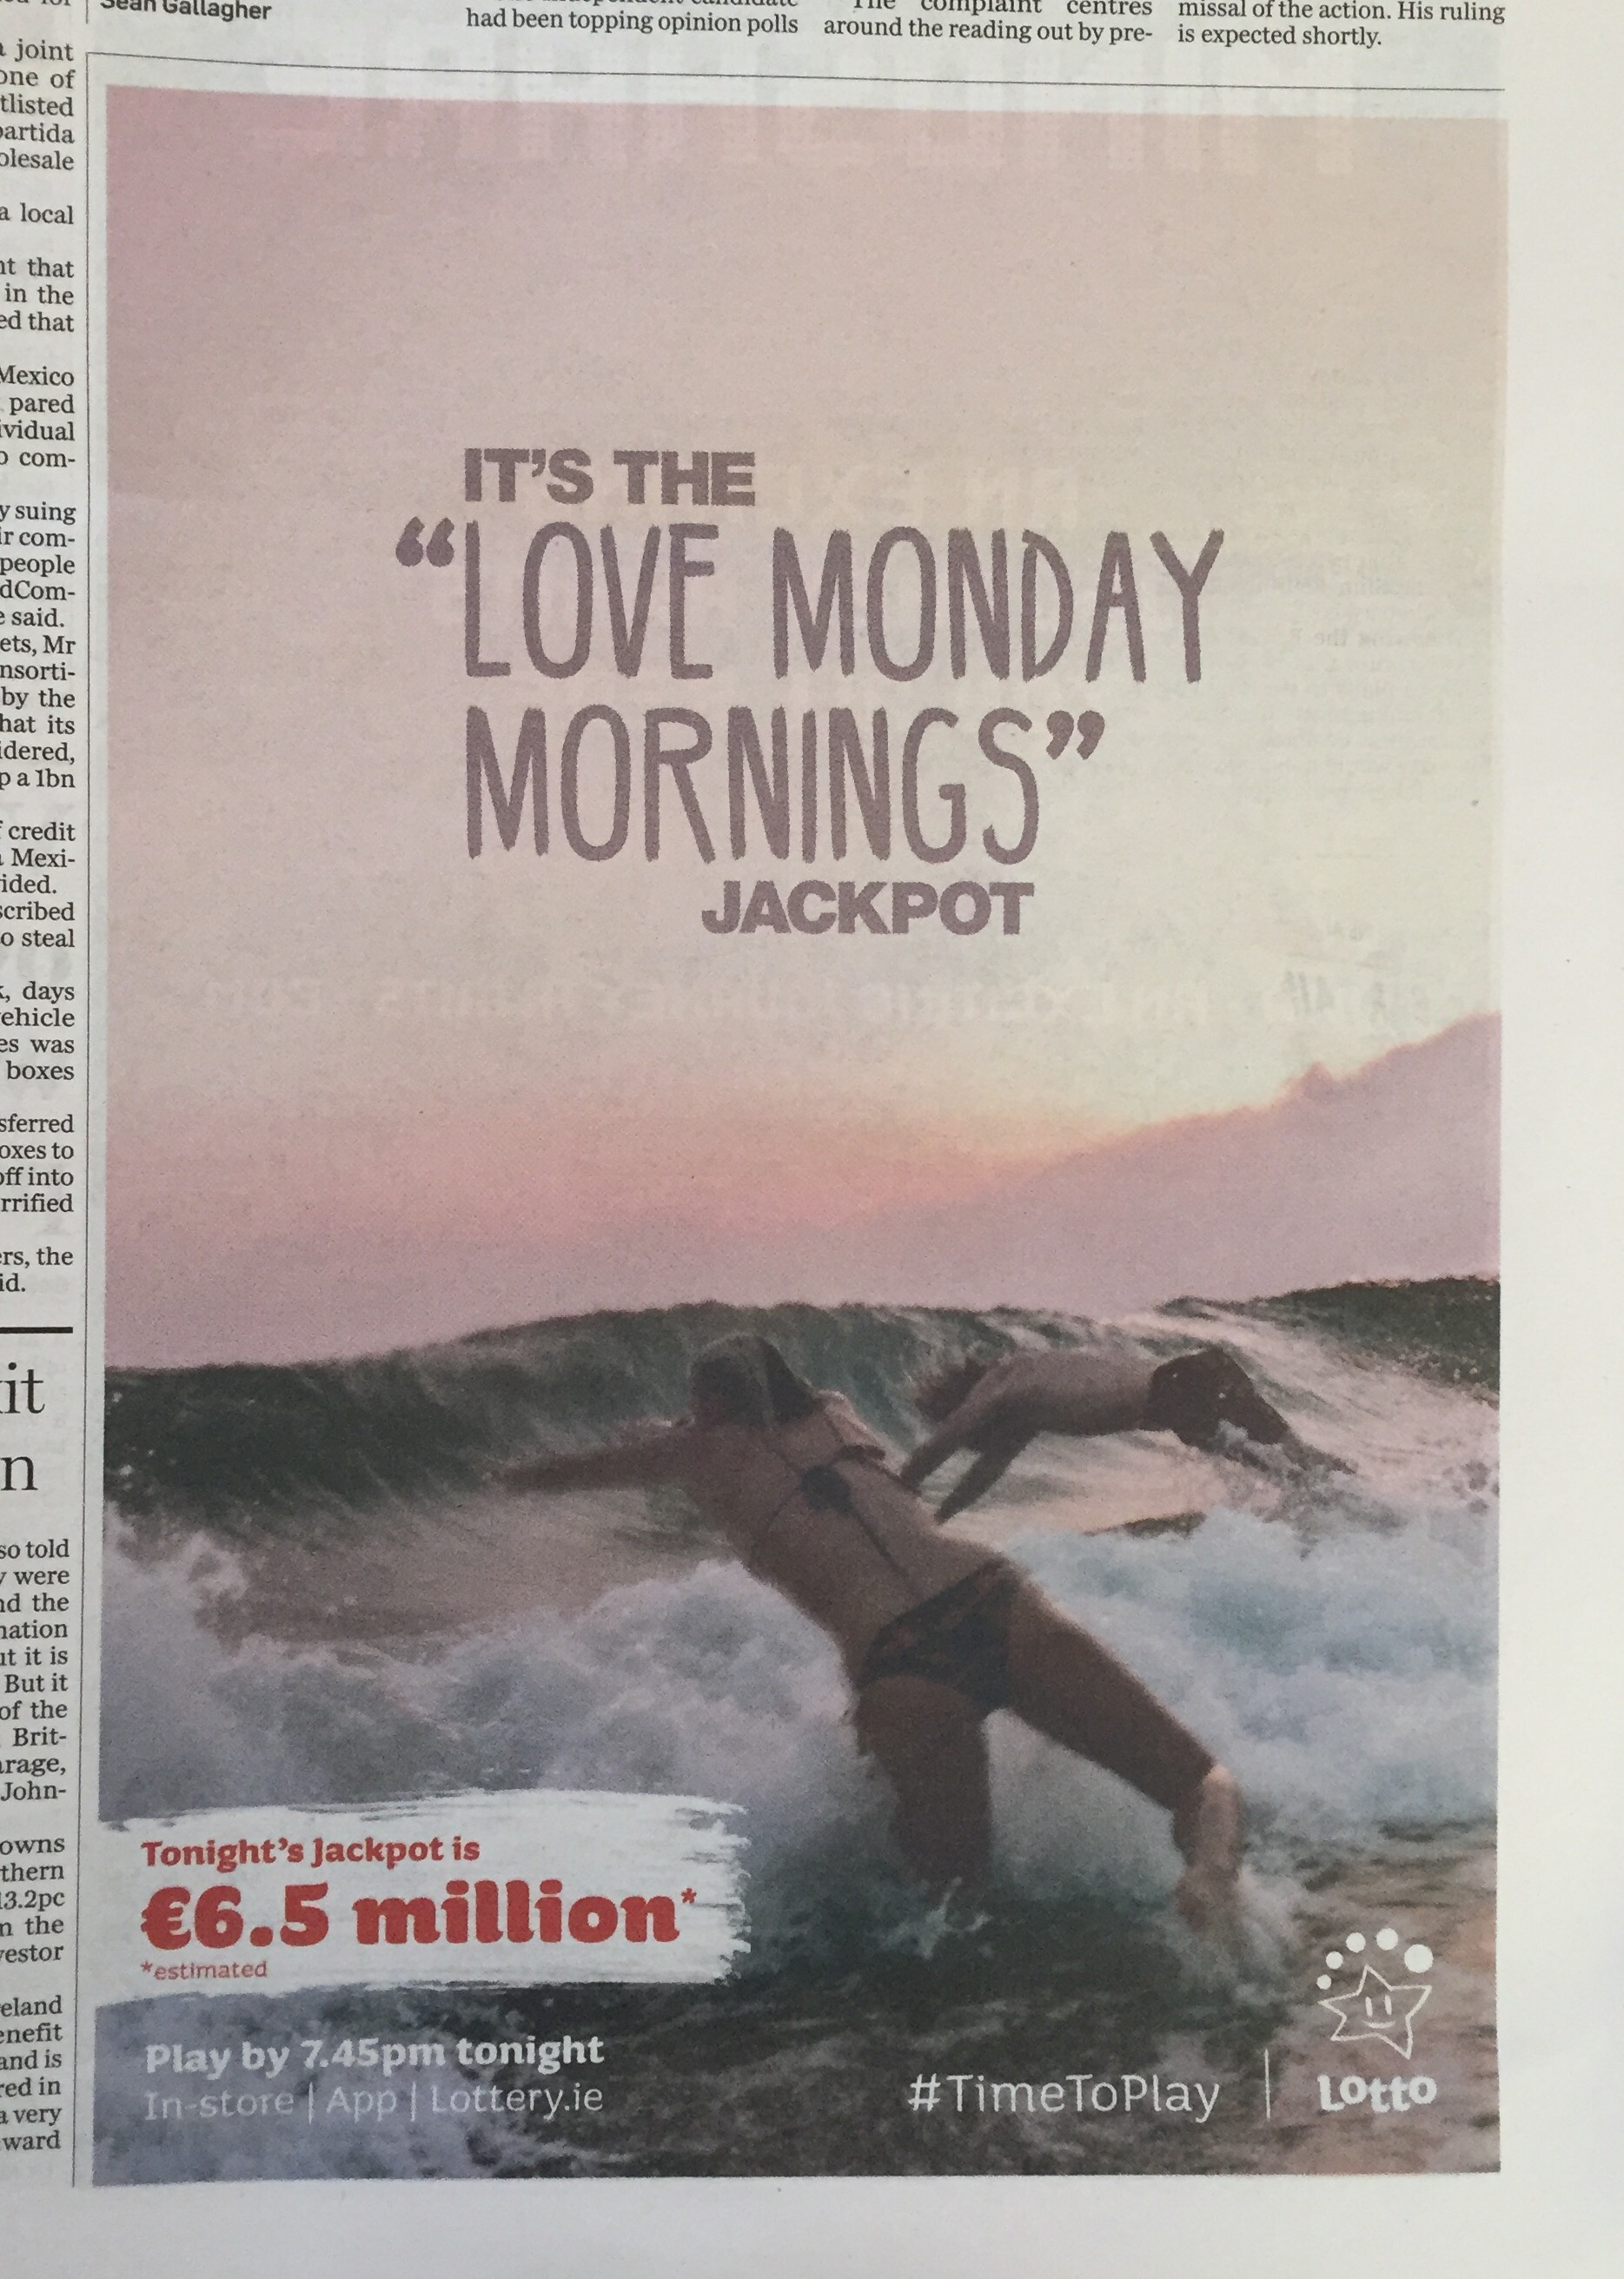 Lotto / it's the love Monday mornings jackpot